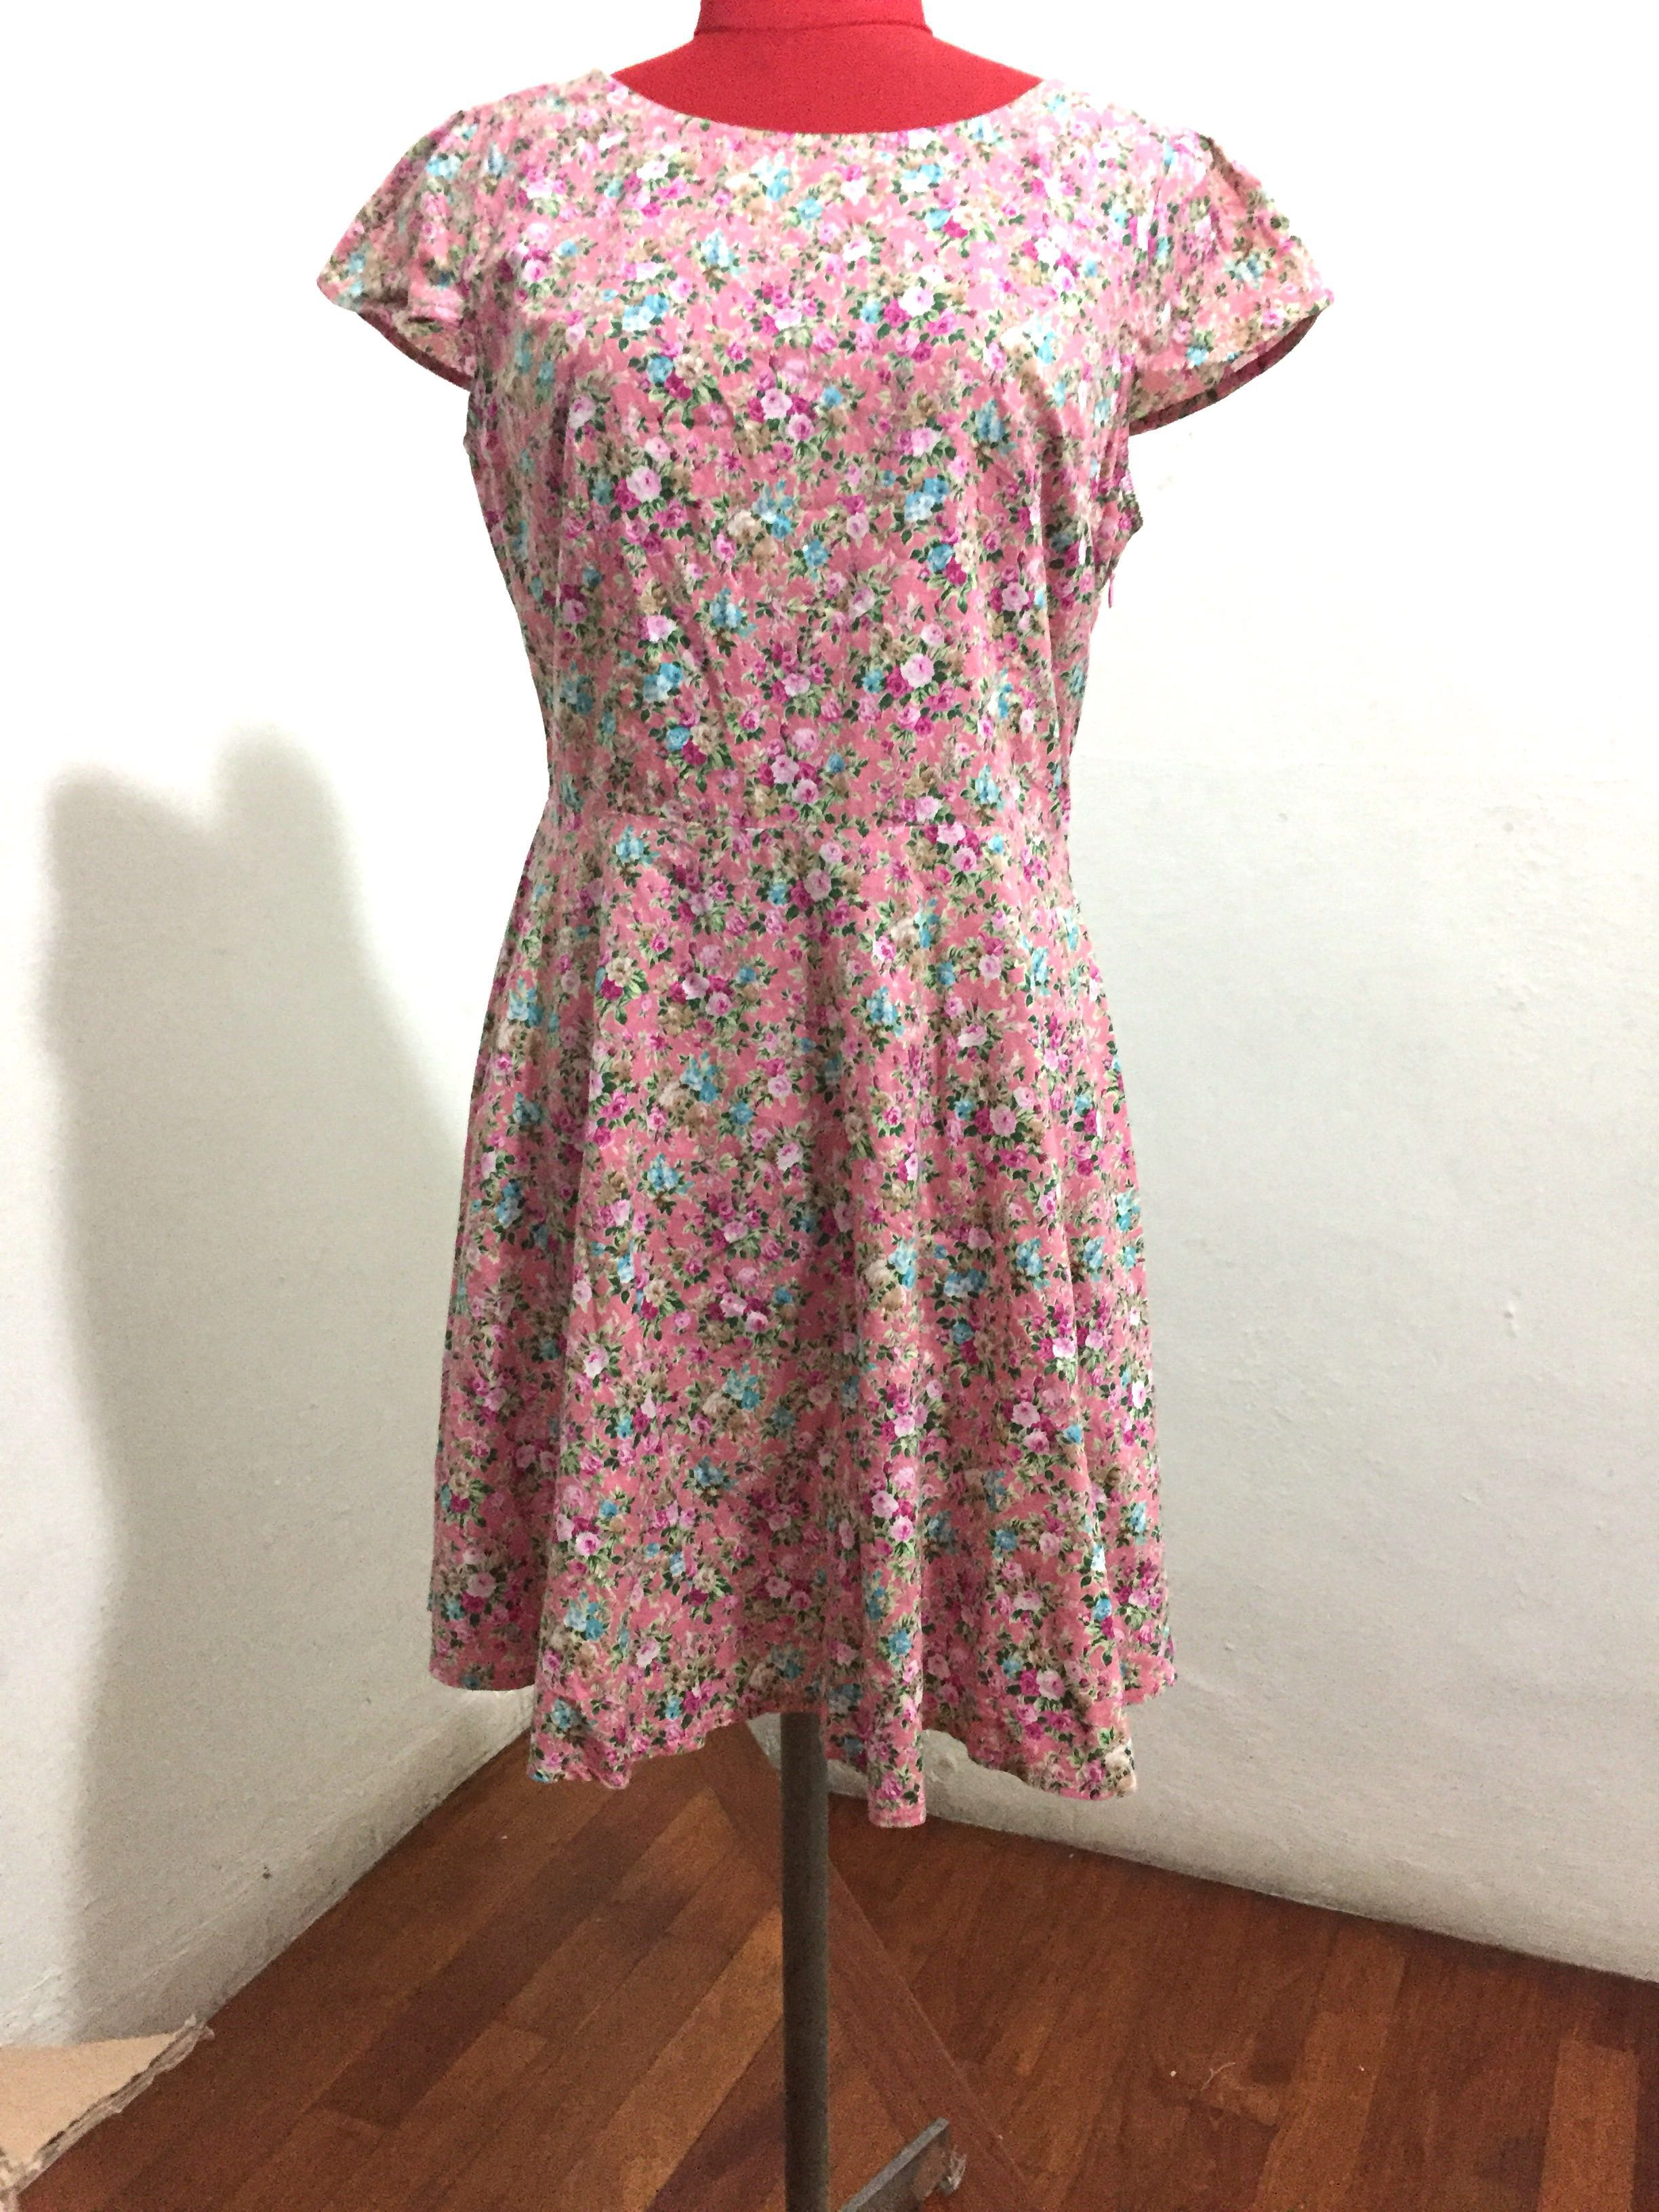 3510a4bdaefd91 Pink floral fit and flare dress with cap sleeves , Women's Fashion ...